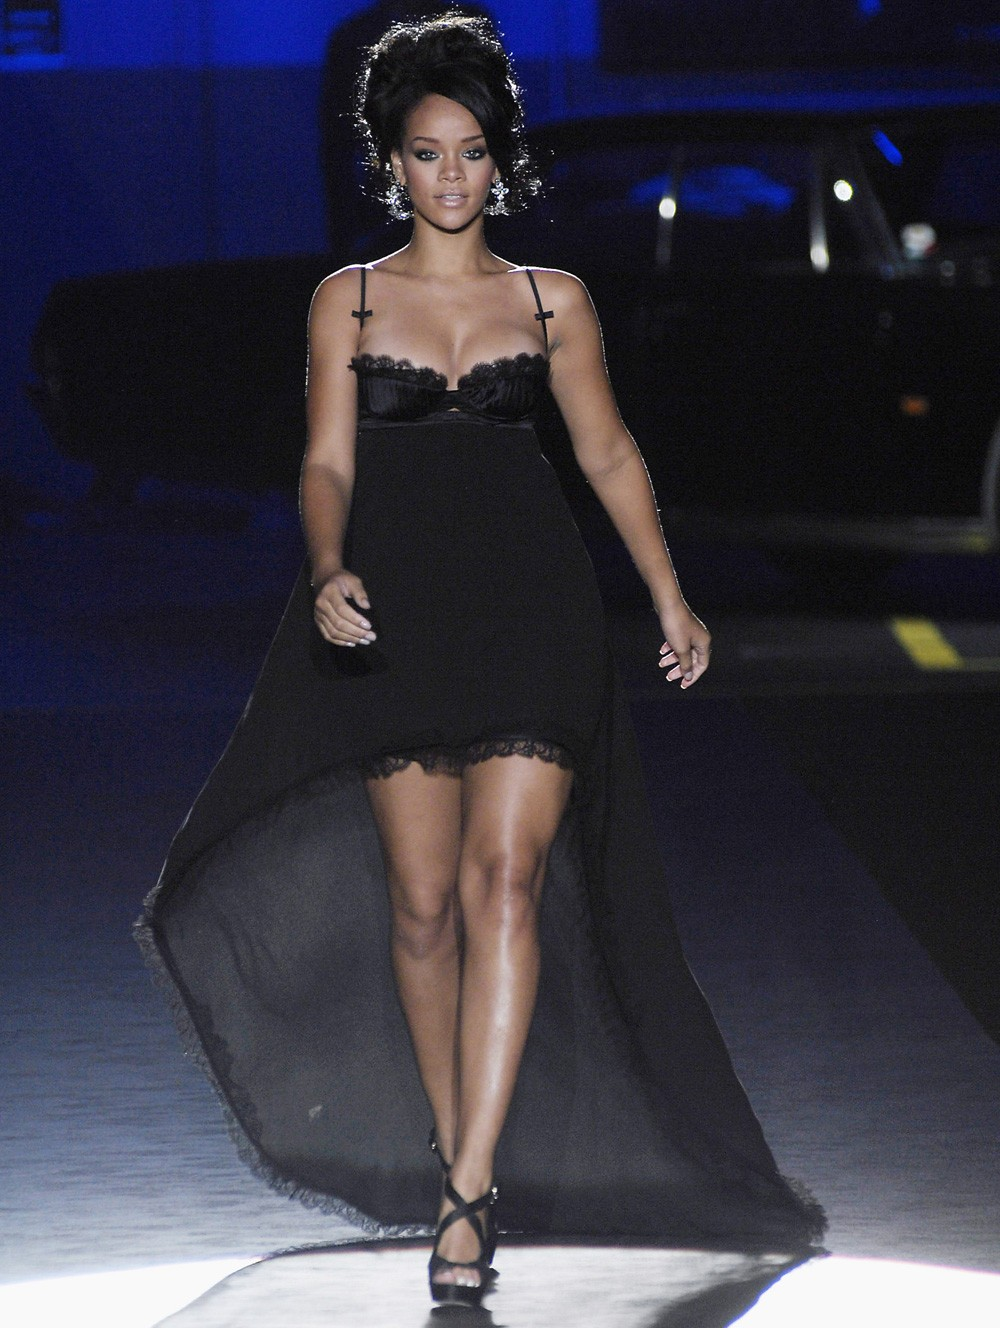 Faceta modelo na passarela da DSquared2 (Foto: Getty Images)